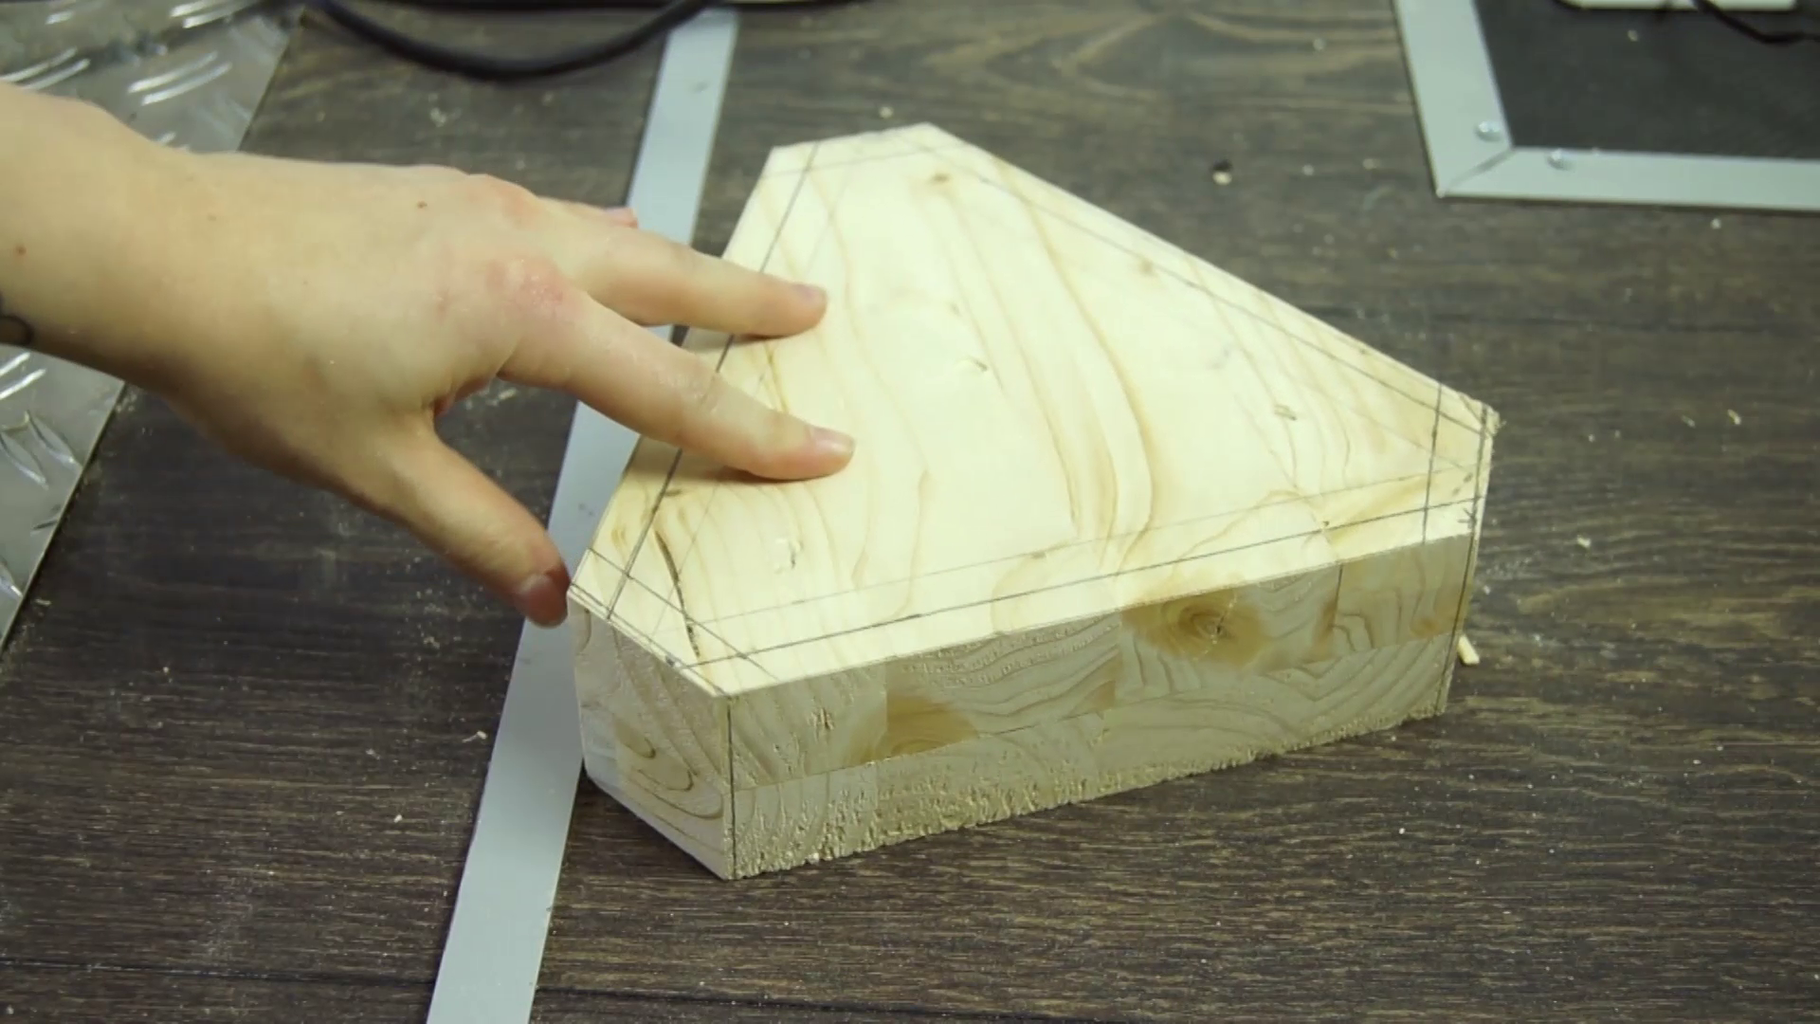 Rough Shaping of the Wood